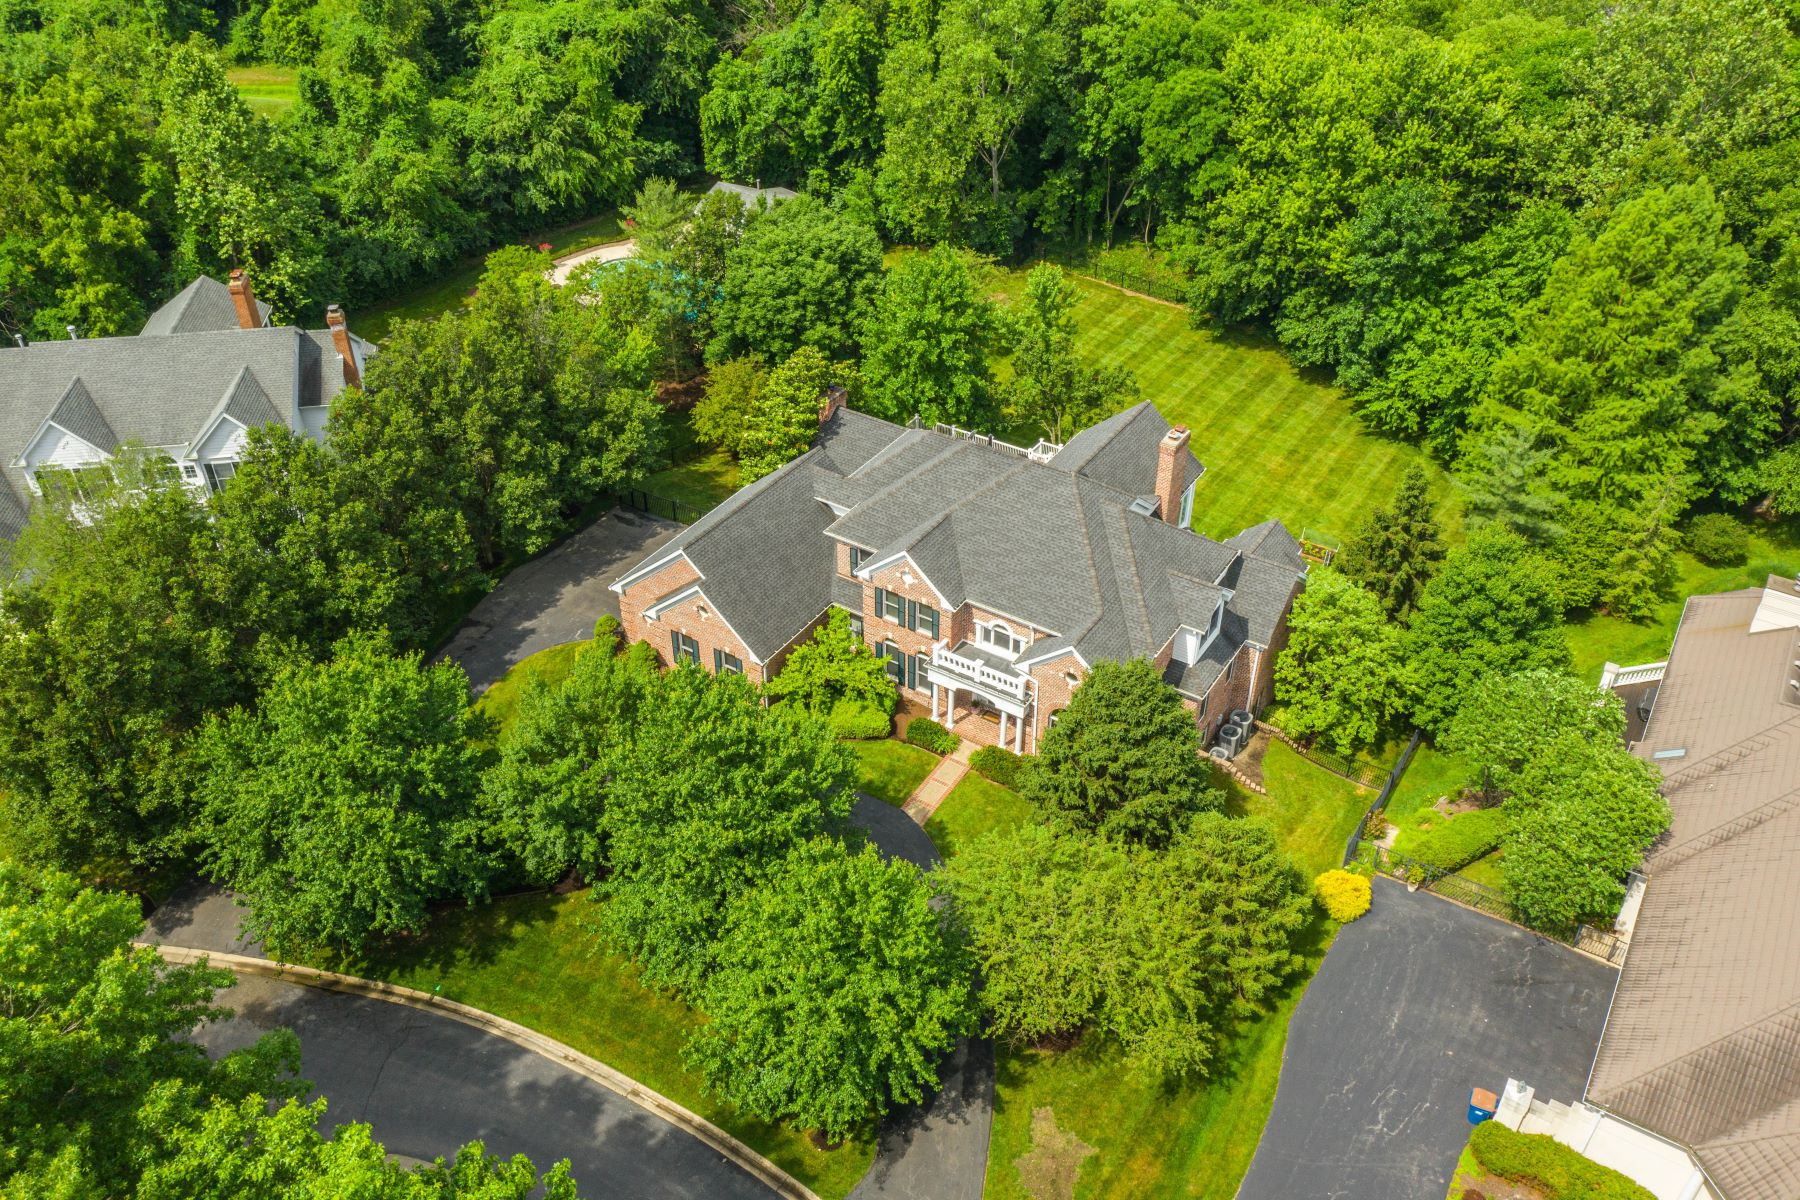 Property for Sale at Custom Newer Home in Ladue School District 121 White Bridge Meadows Lane Creve Coeur, Missouri 63141 United States